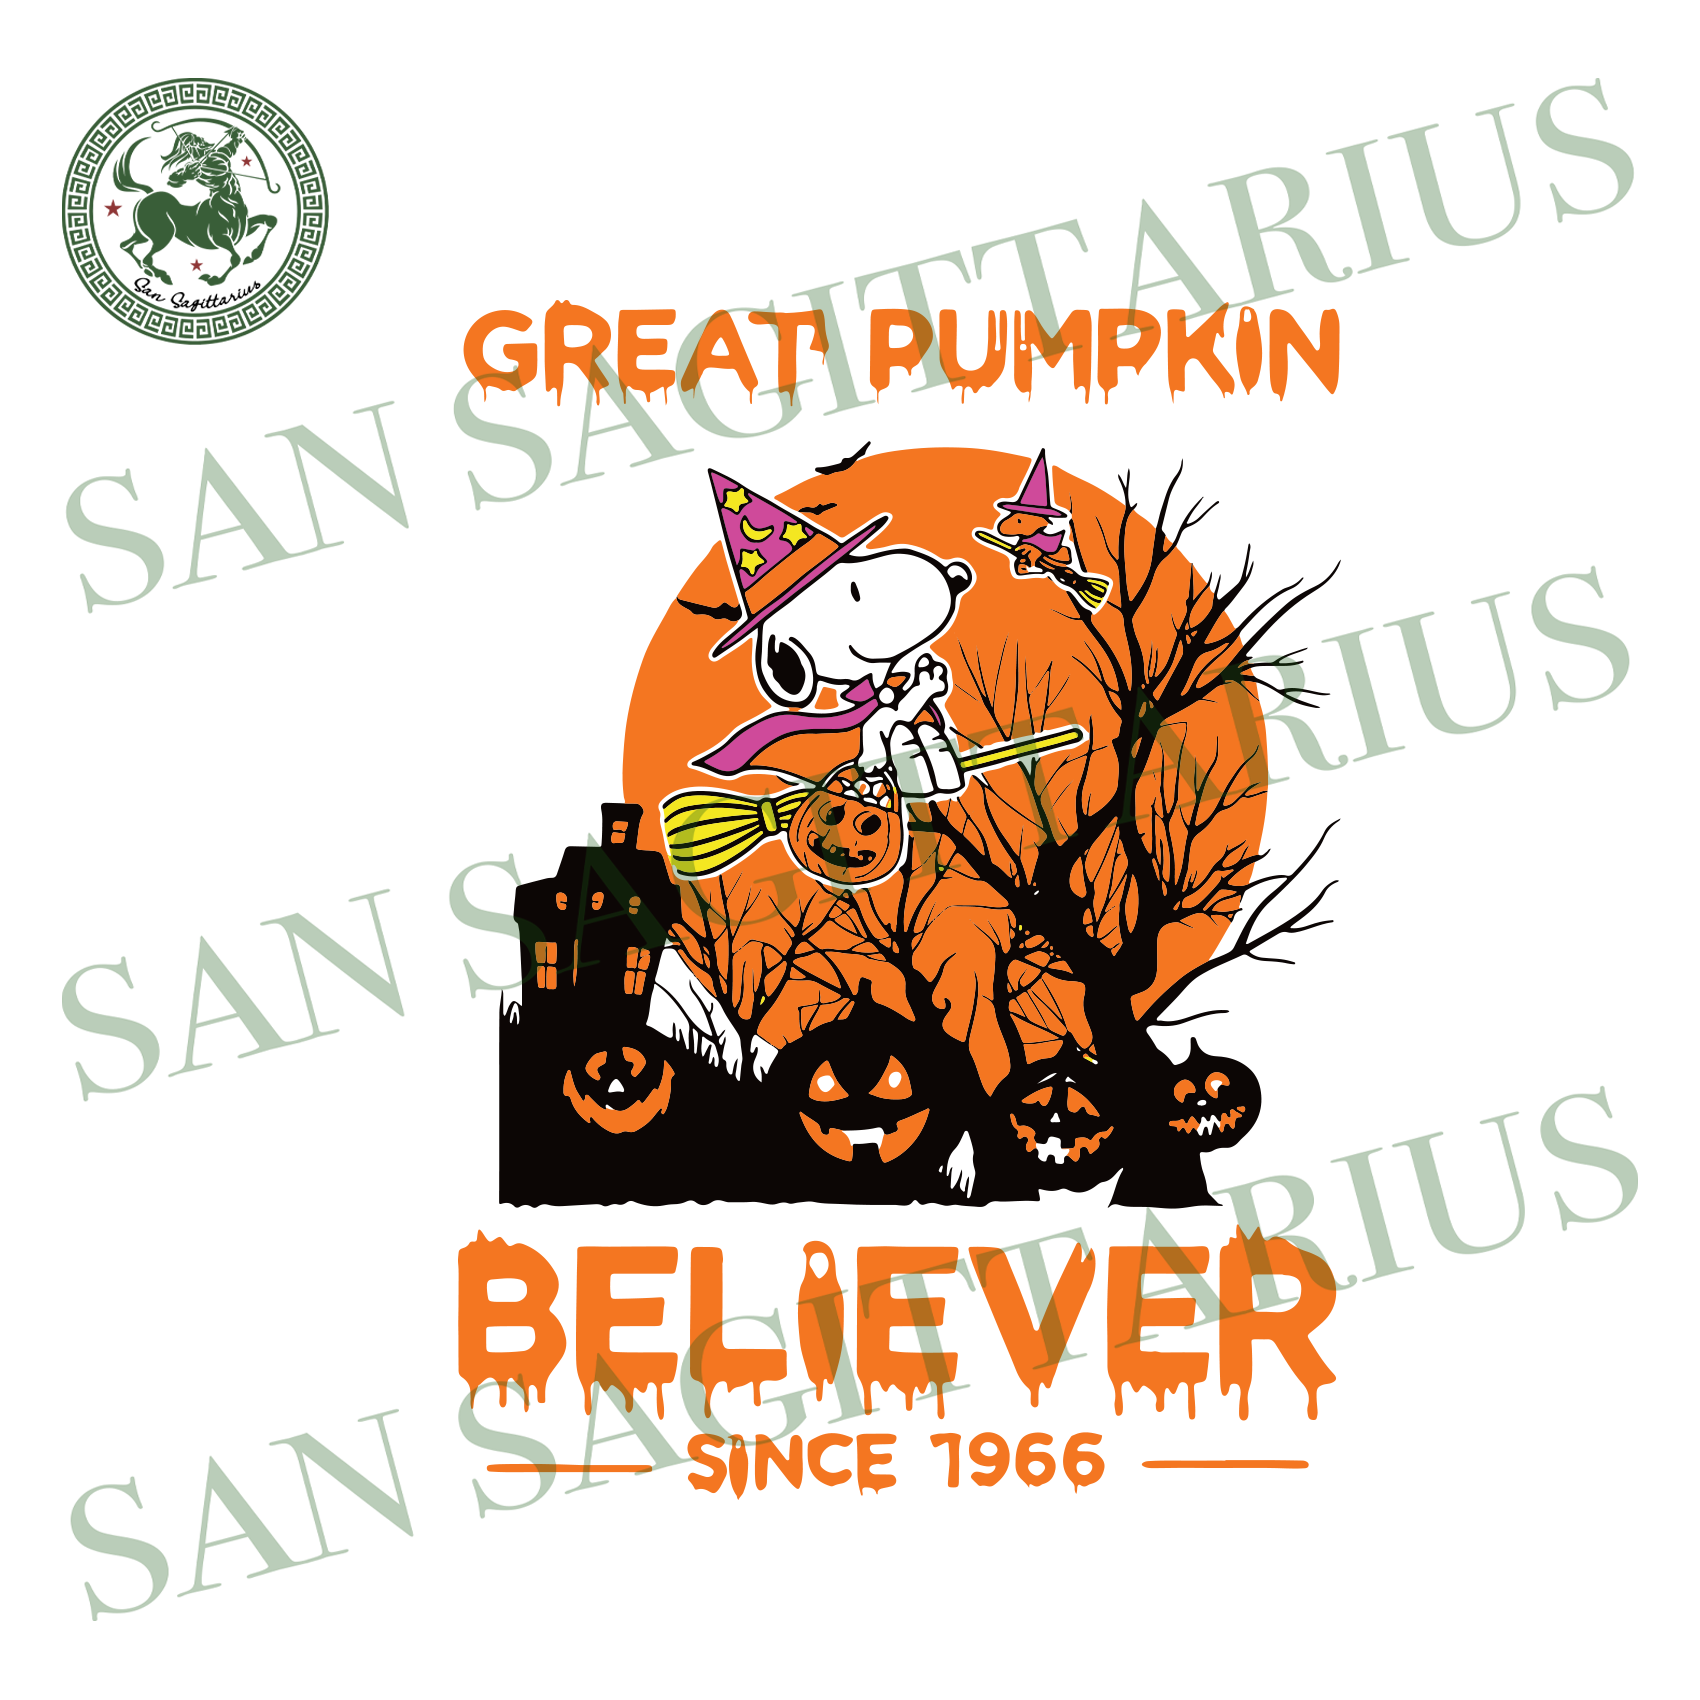 Snoopy Great Pumpkin Believer Since 1966, Halloween Svg, Snoopy Svg, Cute Snoopy, Snoopy Gift, Snoopy Lovers, Snoopy Witch Hat Svg, Scary Halloween, Halloween Party, Funny Halloween, Gift For